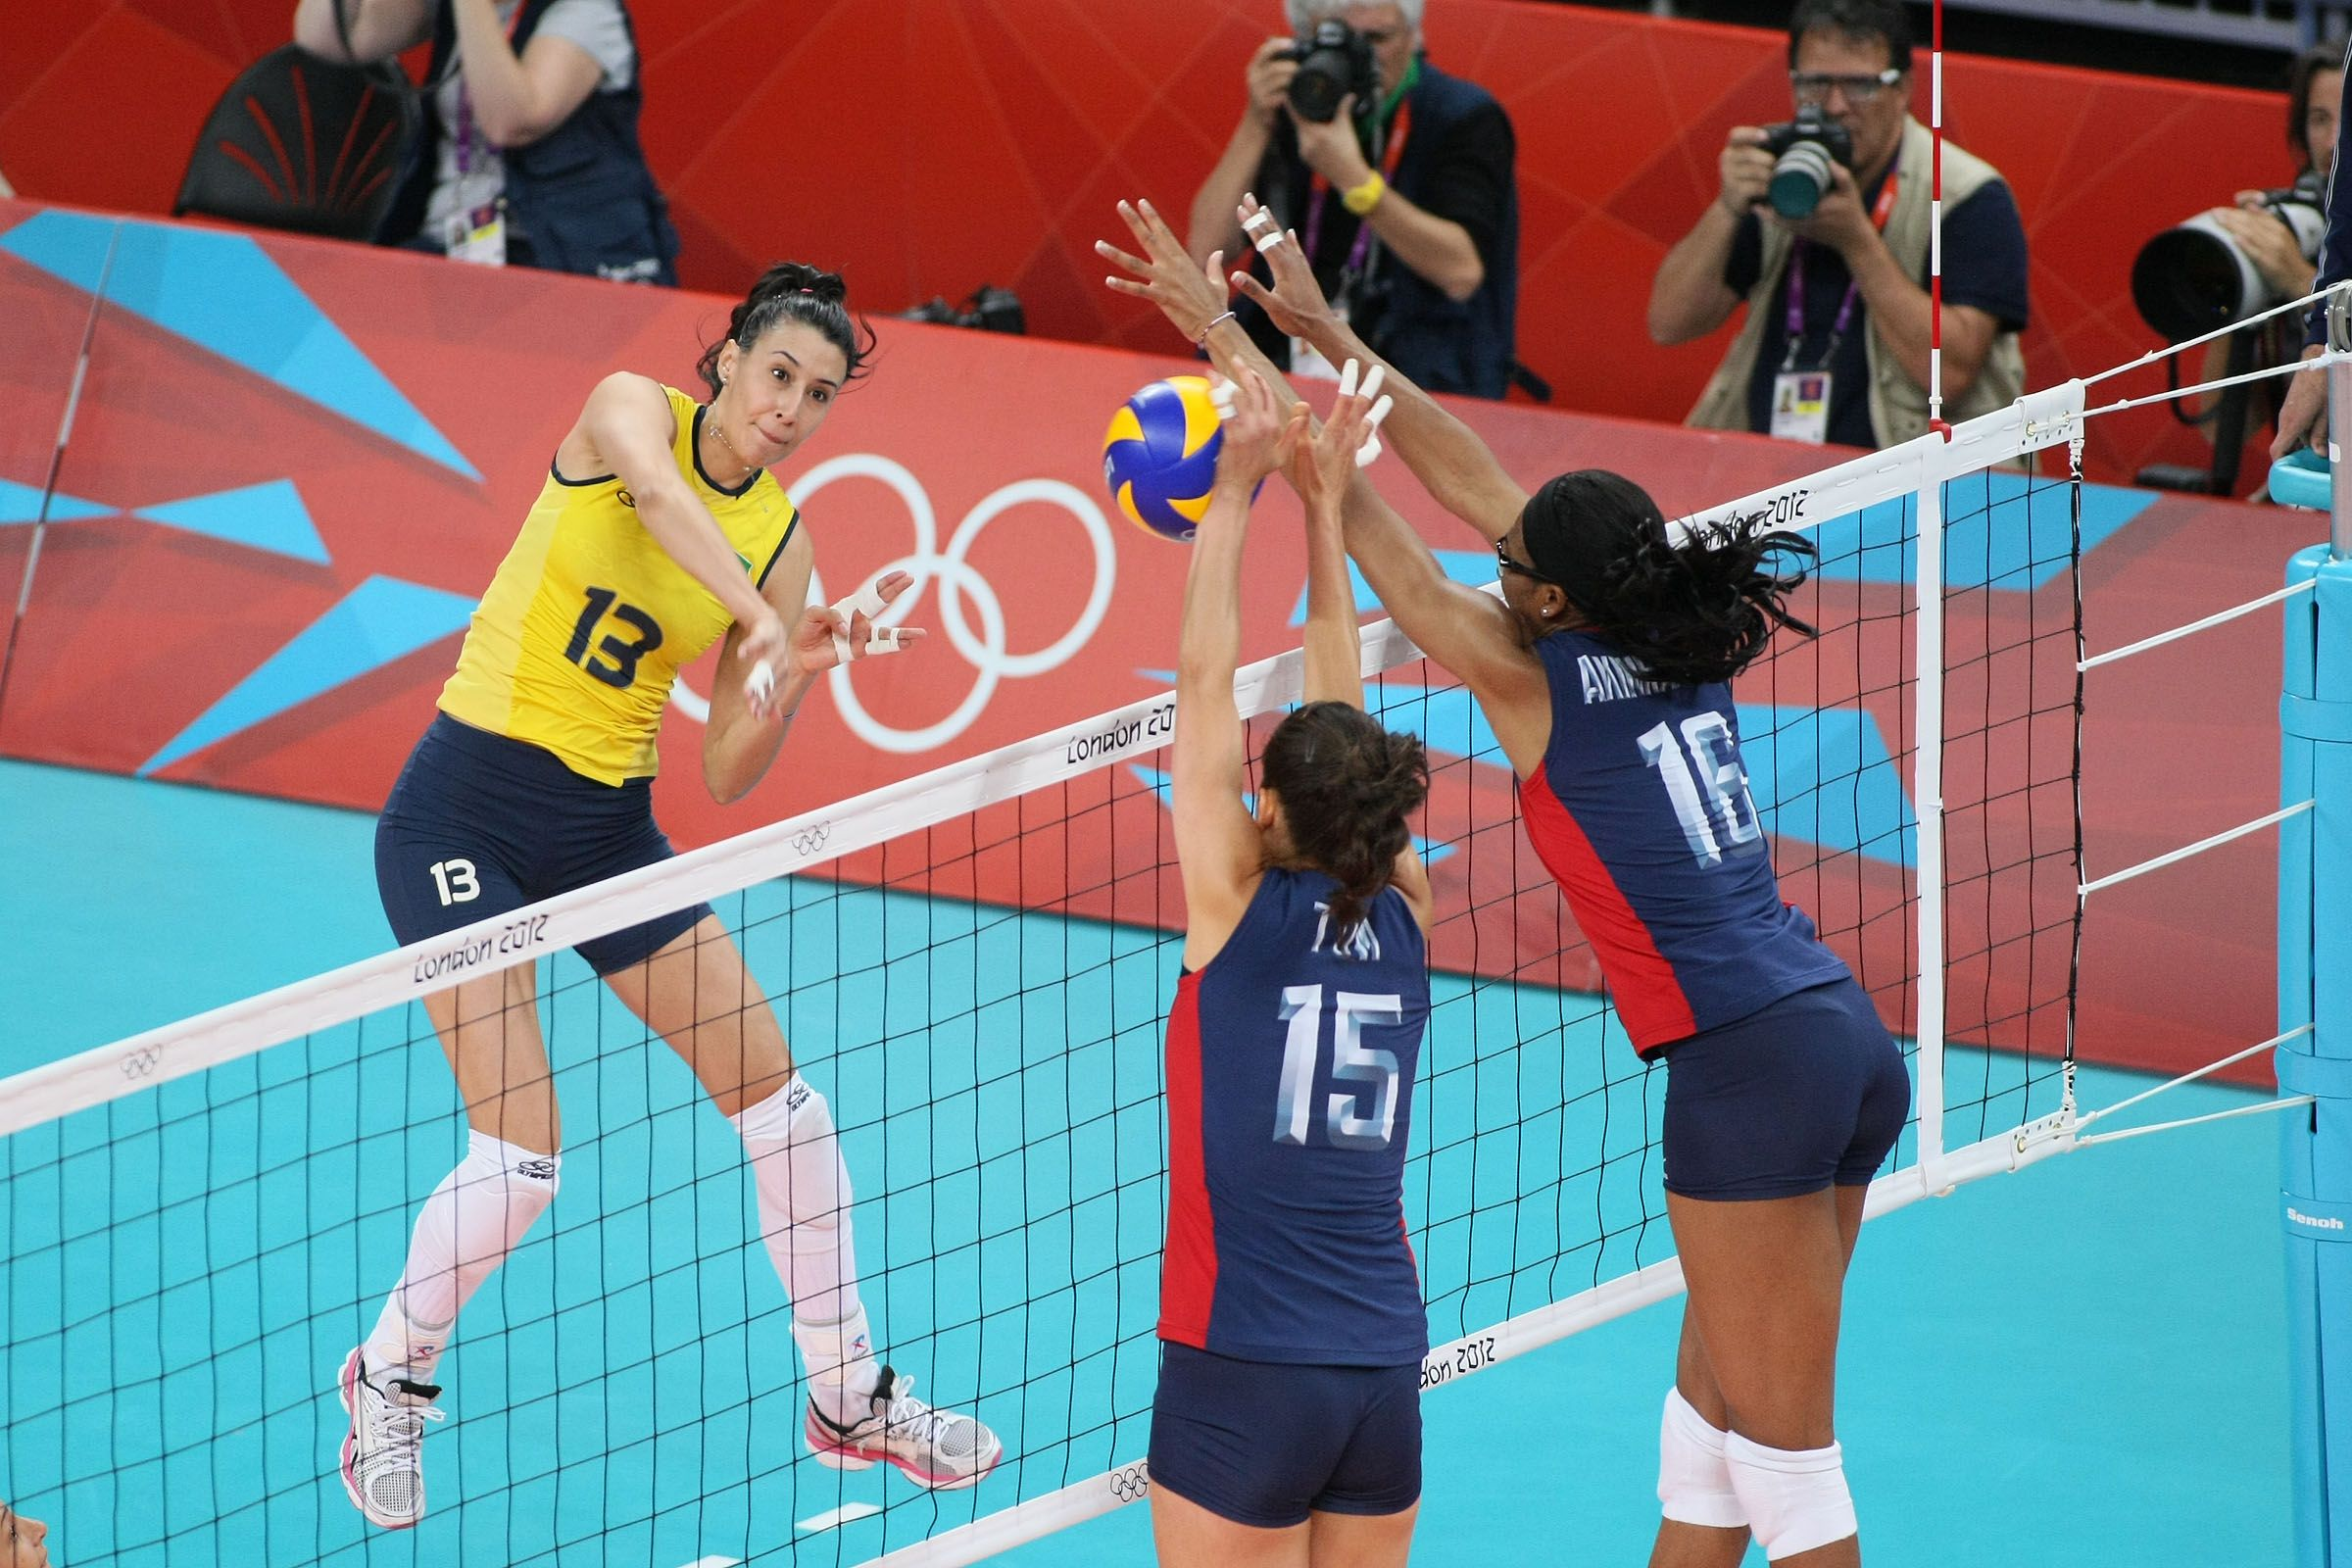 News Rio 2016 Olympic Games Qualification Process Volleyball Rio Olympic Games Olympic Games Rio Olympics 2016